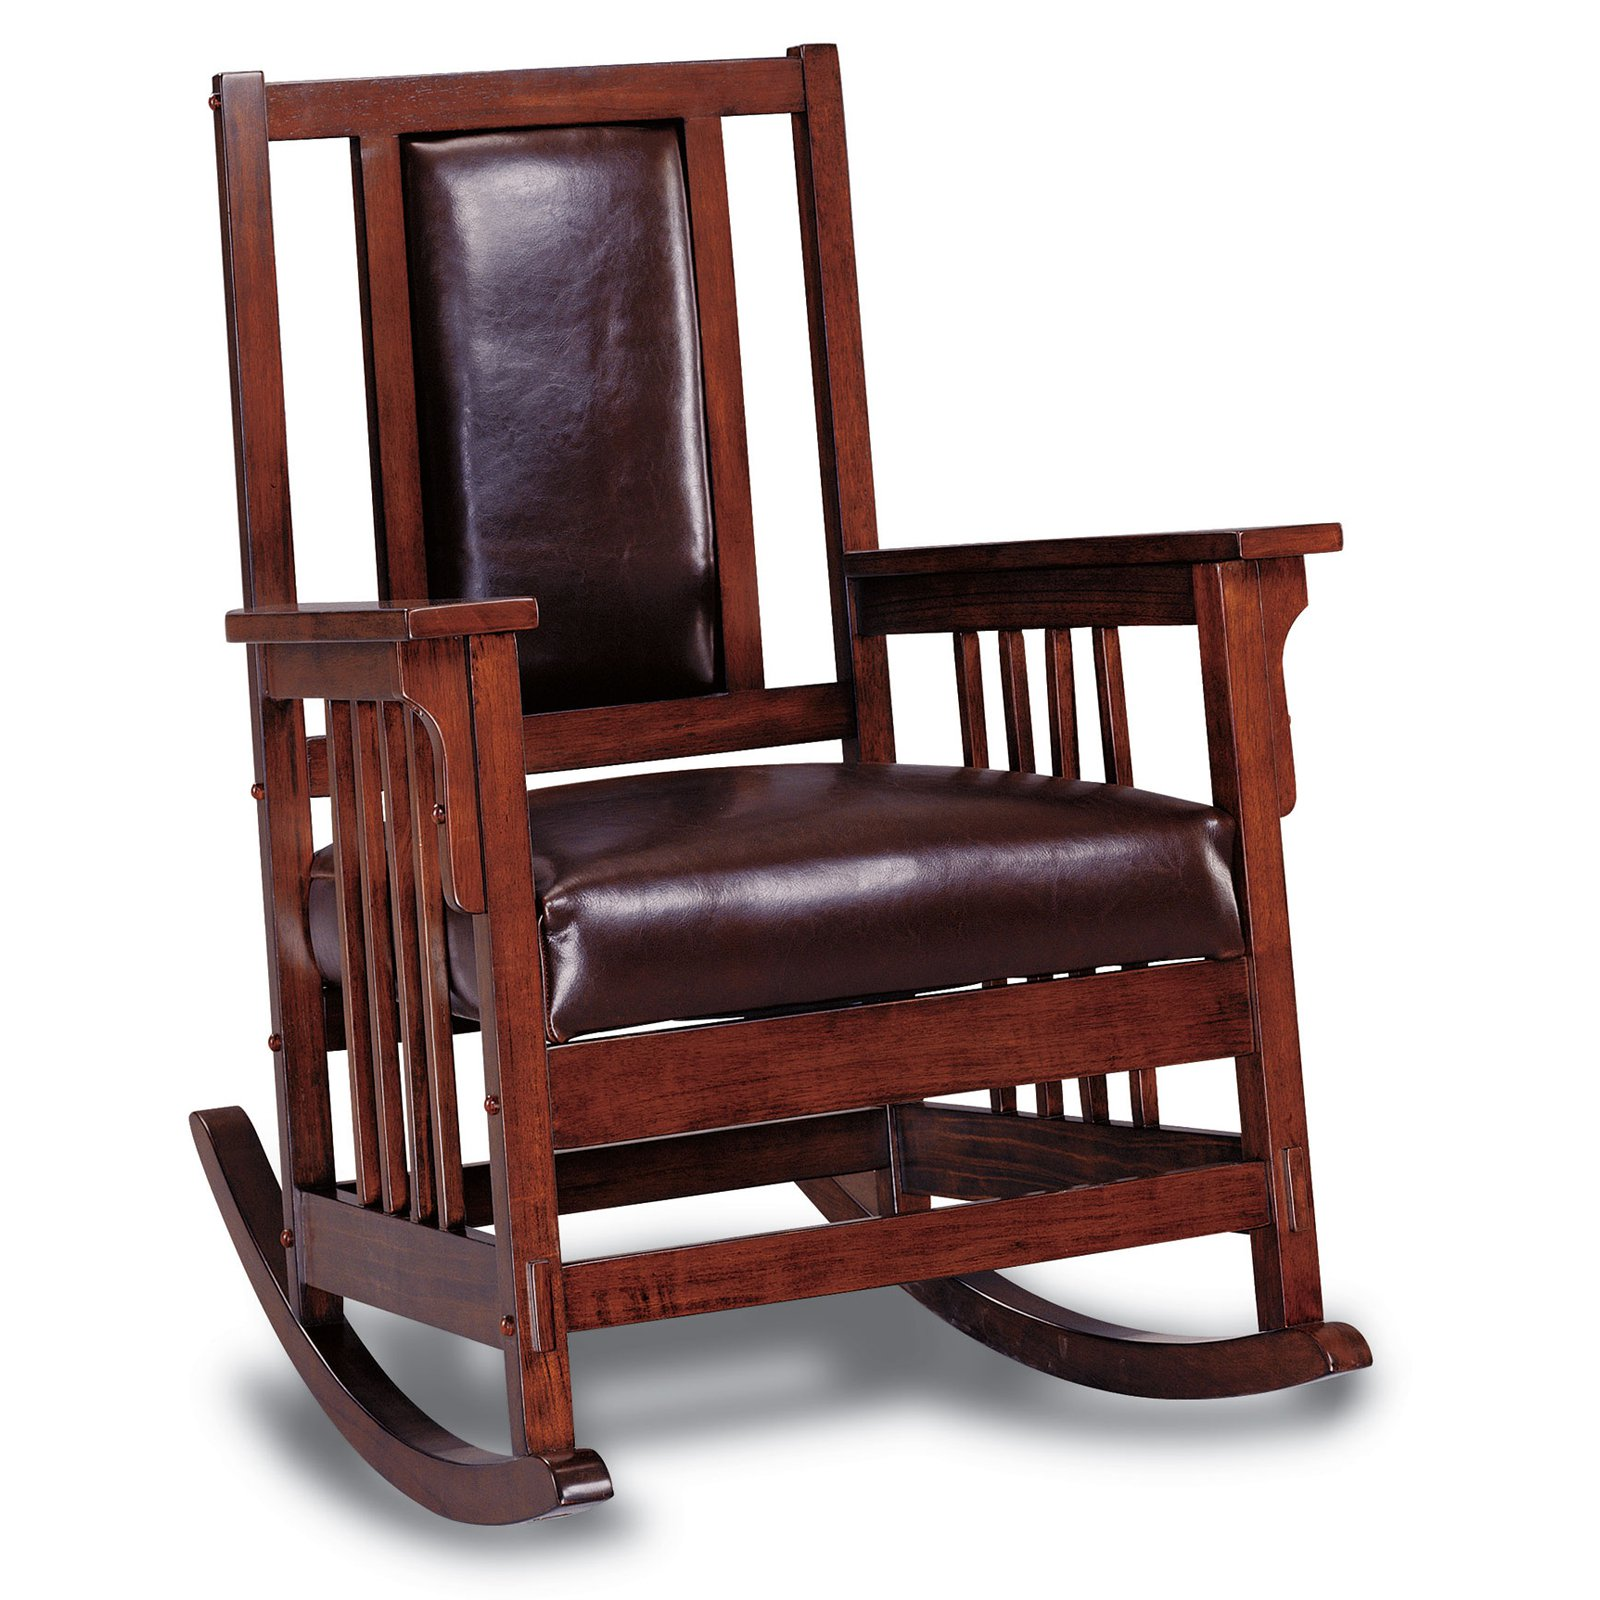 Coaster Lakewood Indoor Rocking Chair by Coaster Company